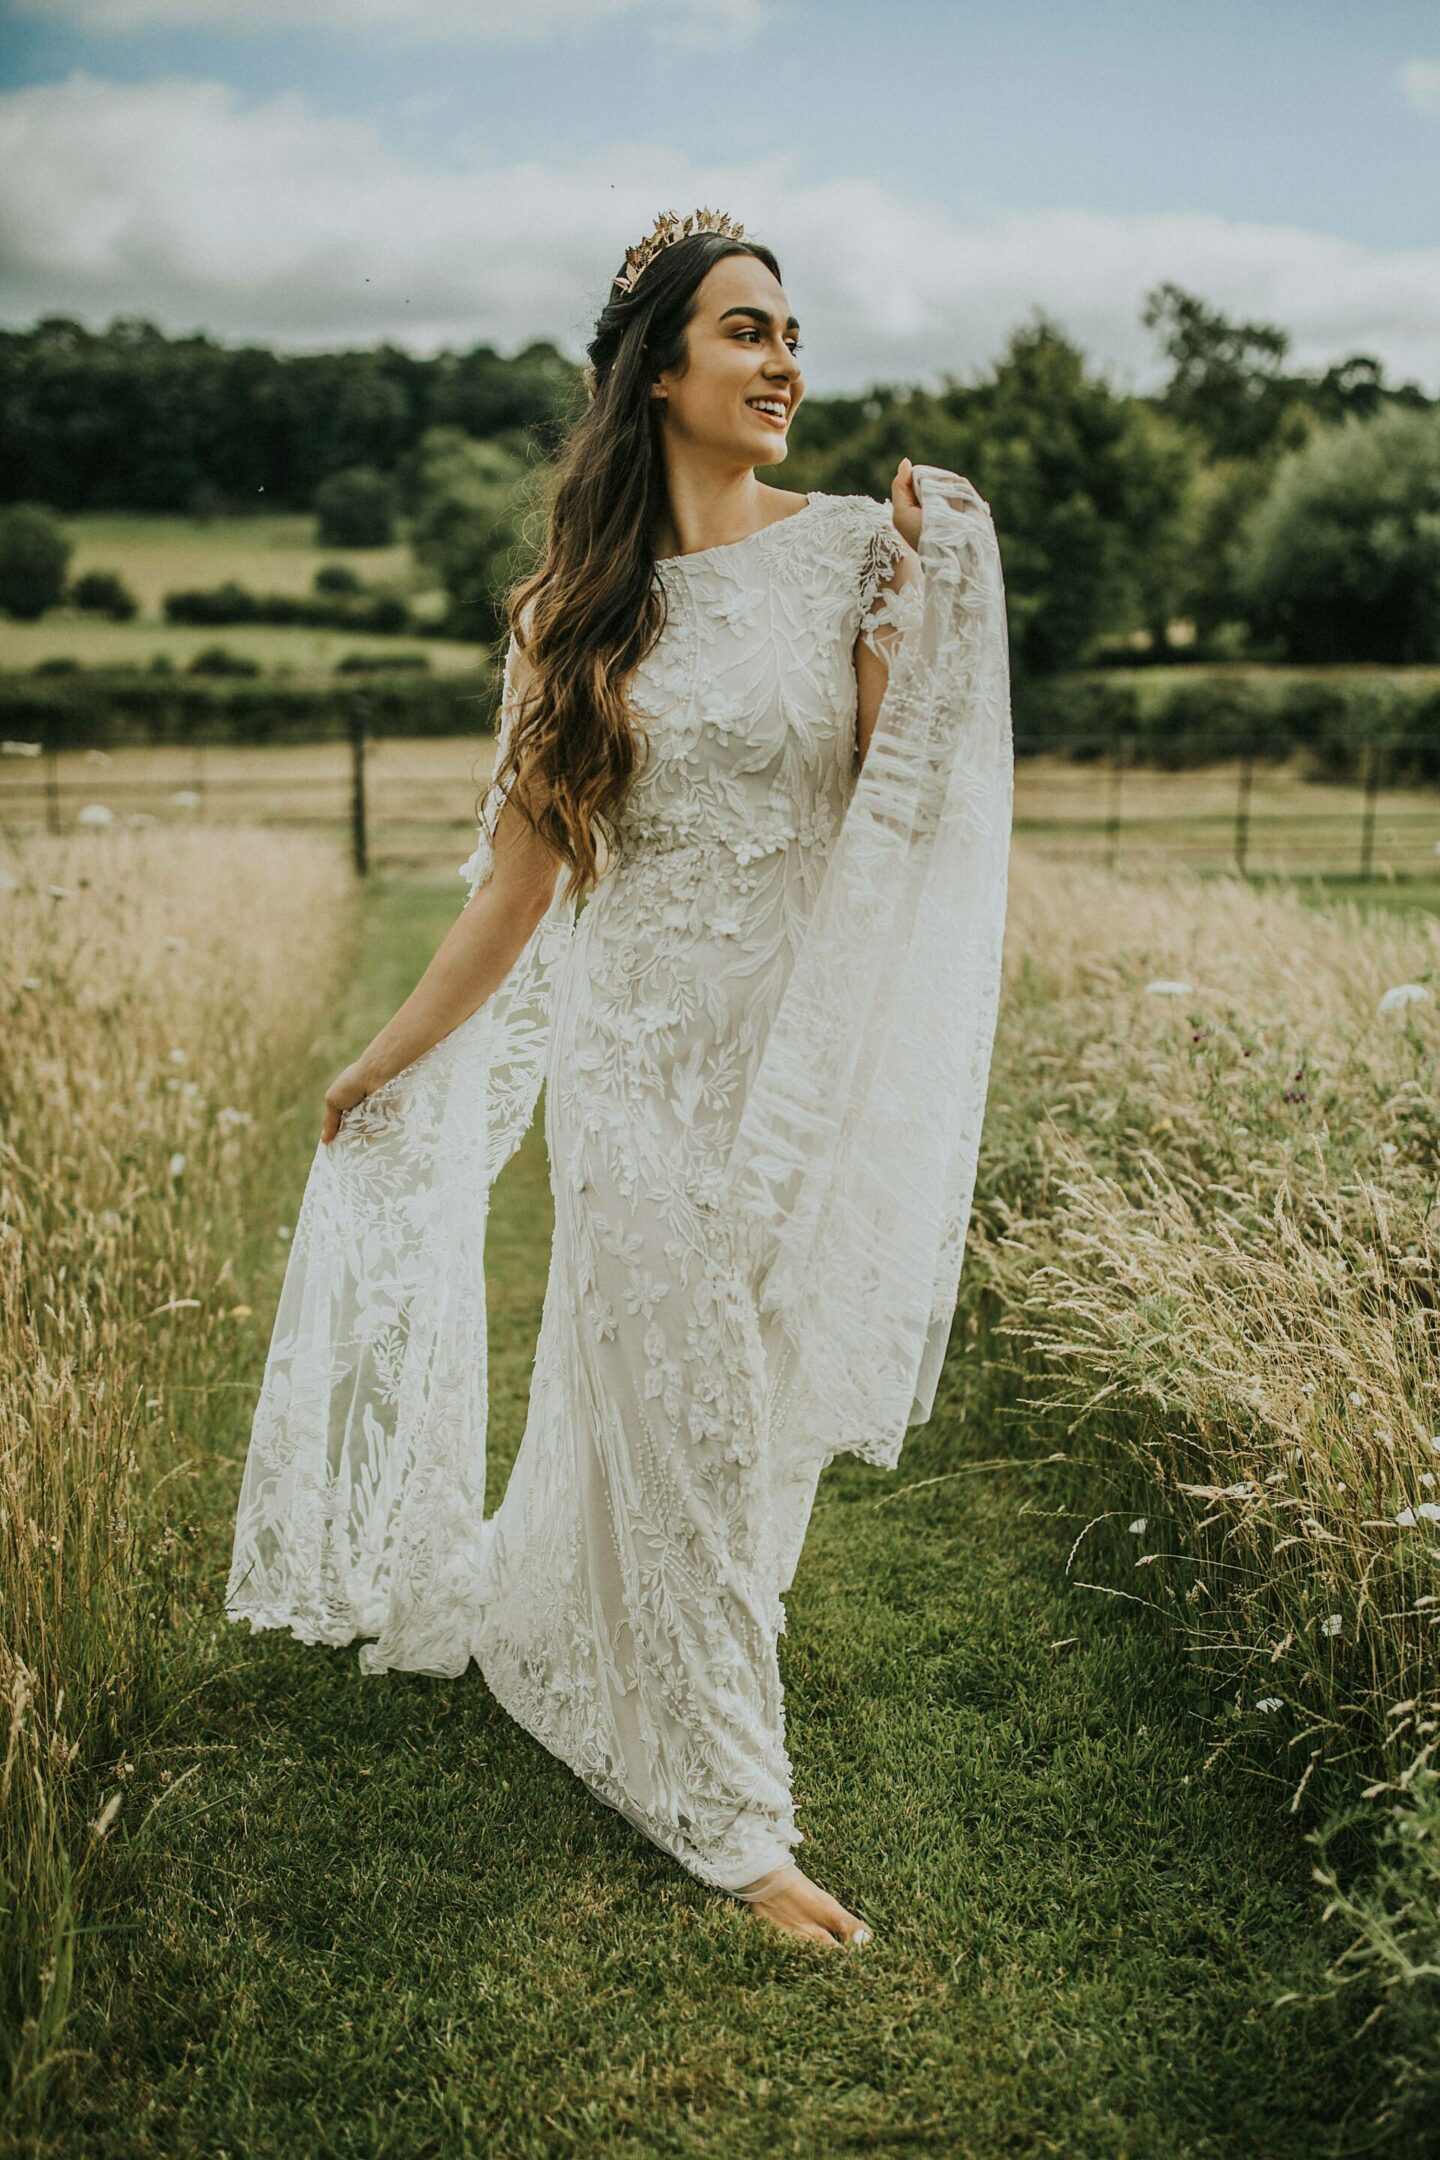 White Wisteria wedding dress